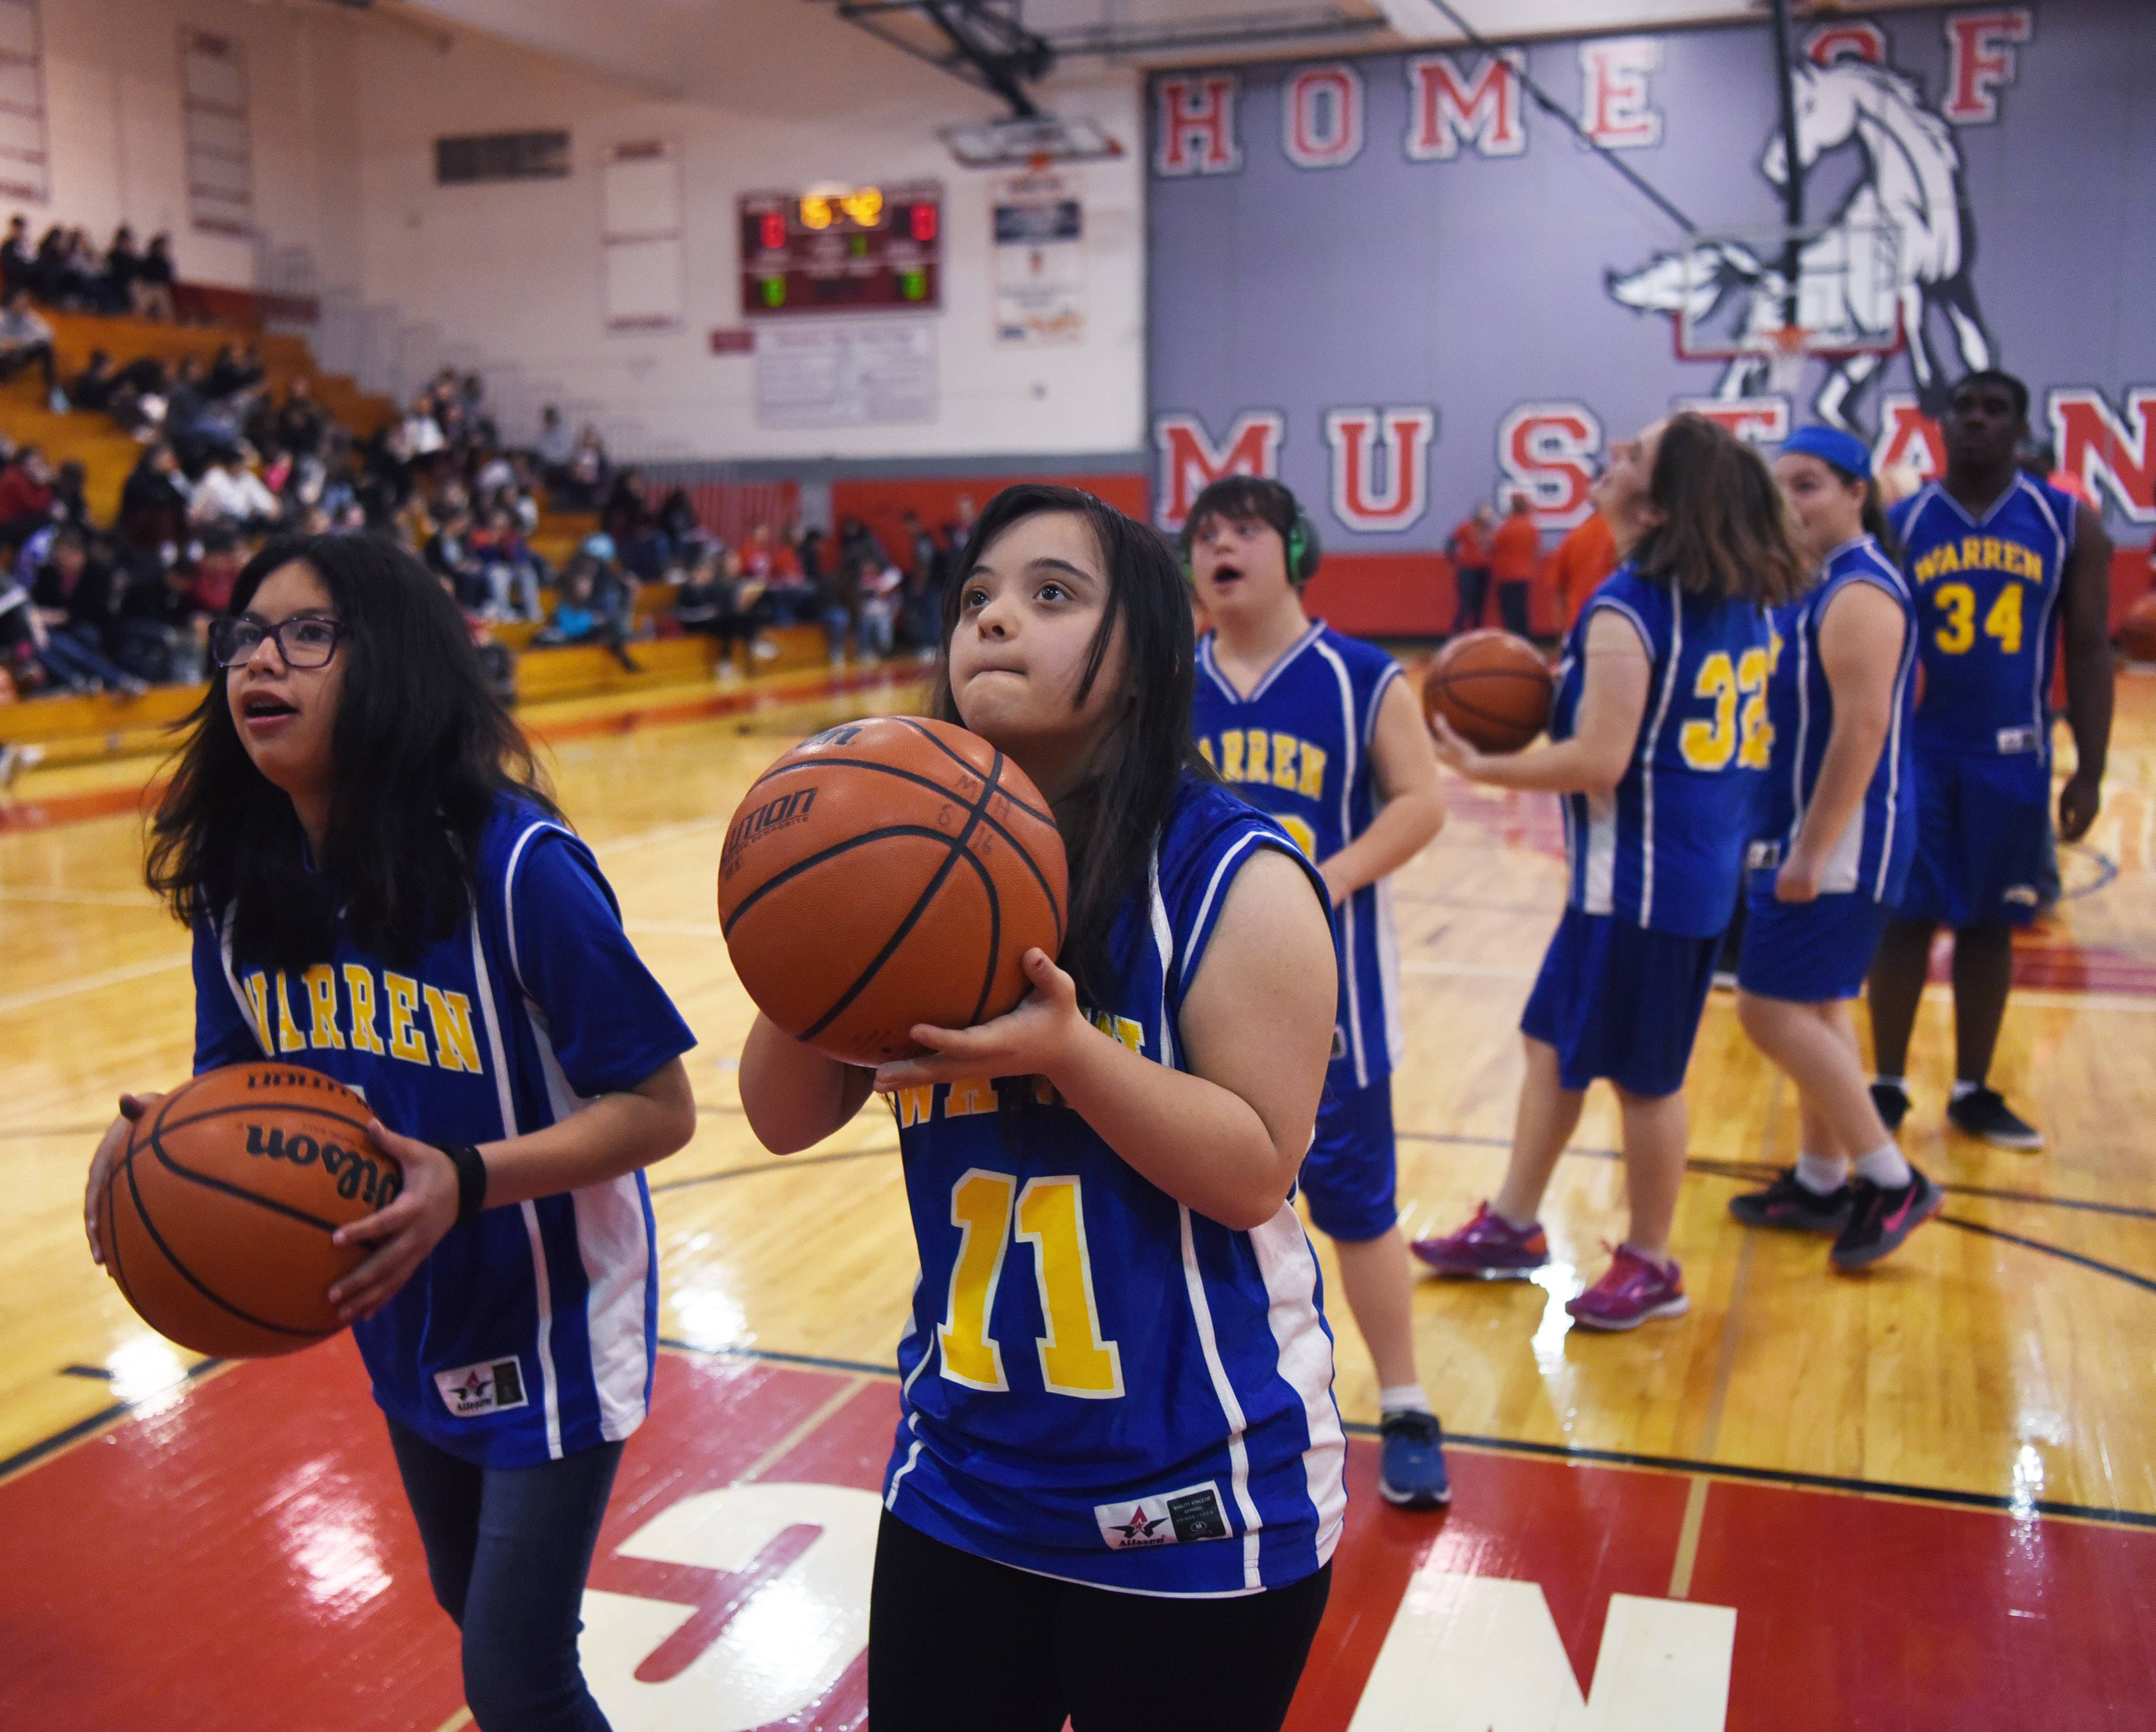 Warren Township High School's Keisha Sievers, left, and Saja Abdel-Jaber practice before Friday's basketball game for adaptive physical education students at Mundelein High School.